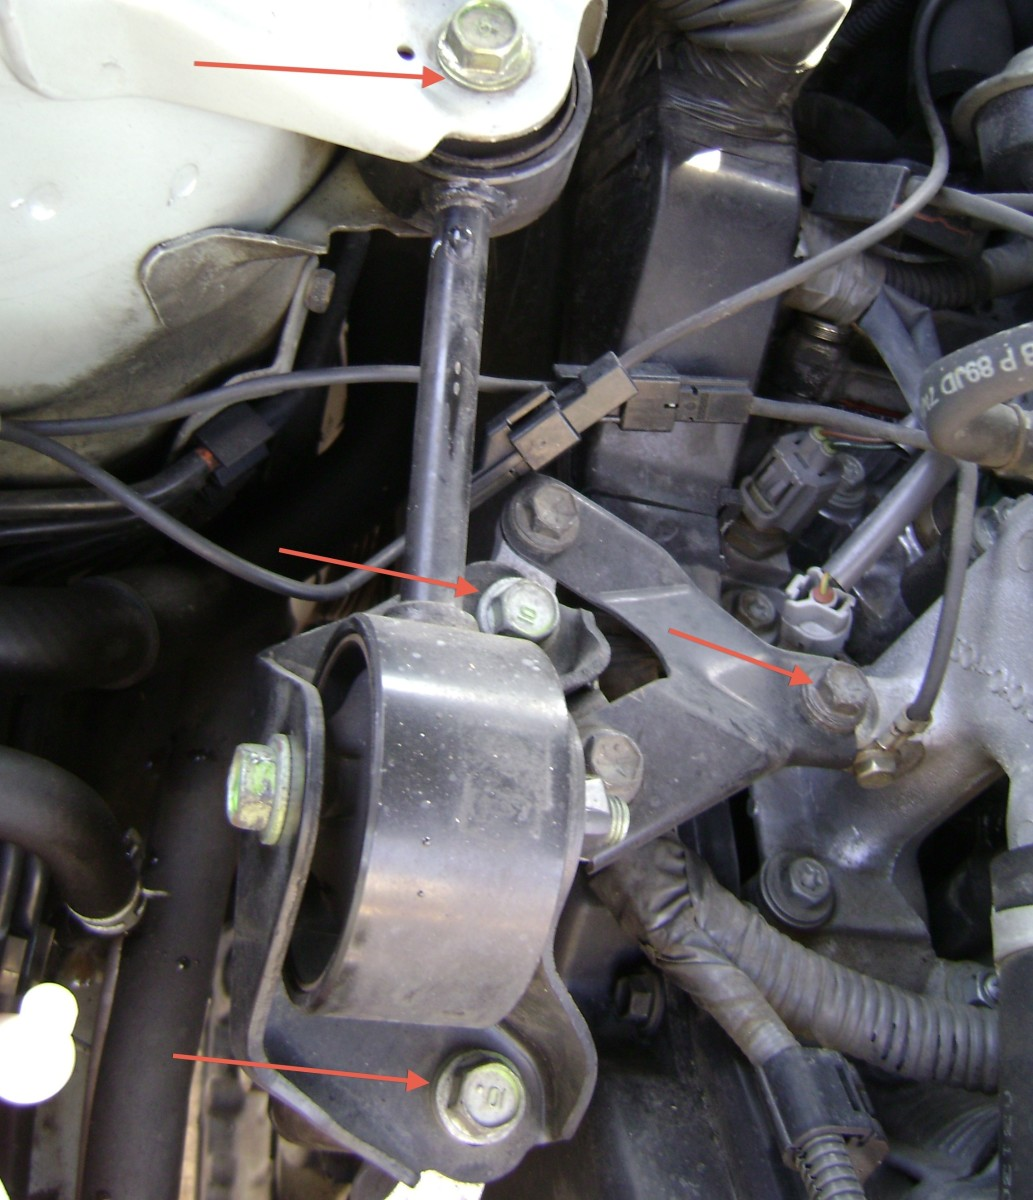 R.  Remove bolts in order to remove the side engine mount (torque rod).